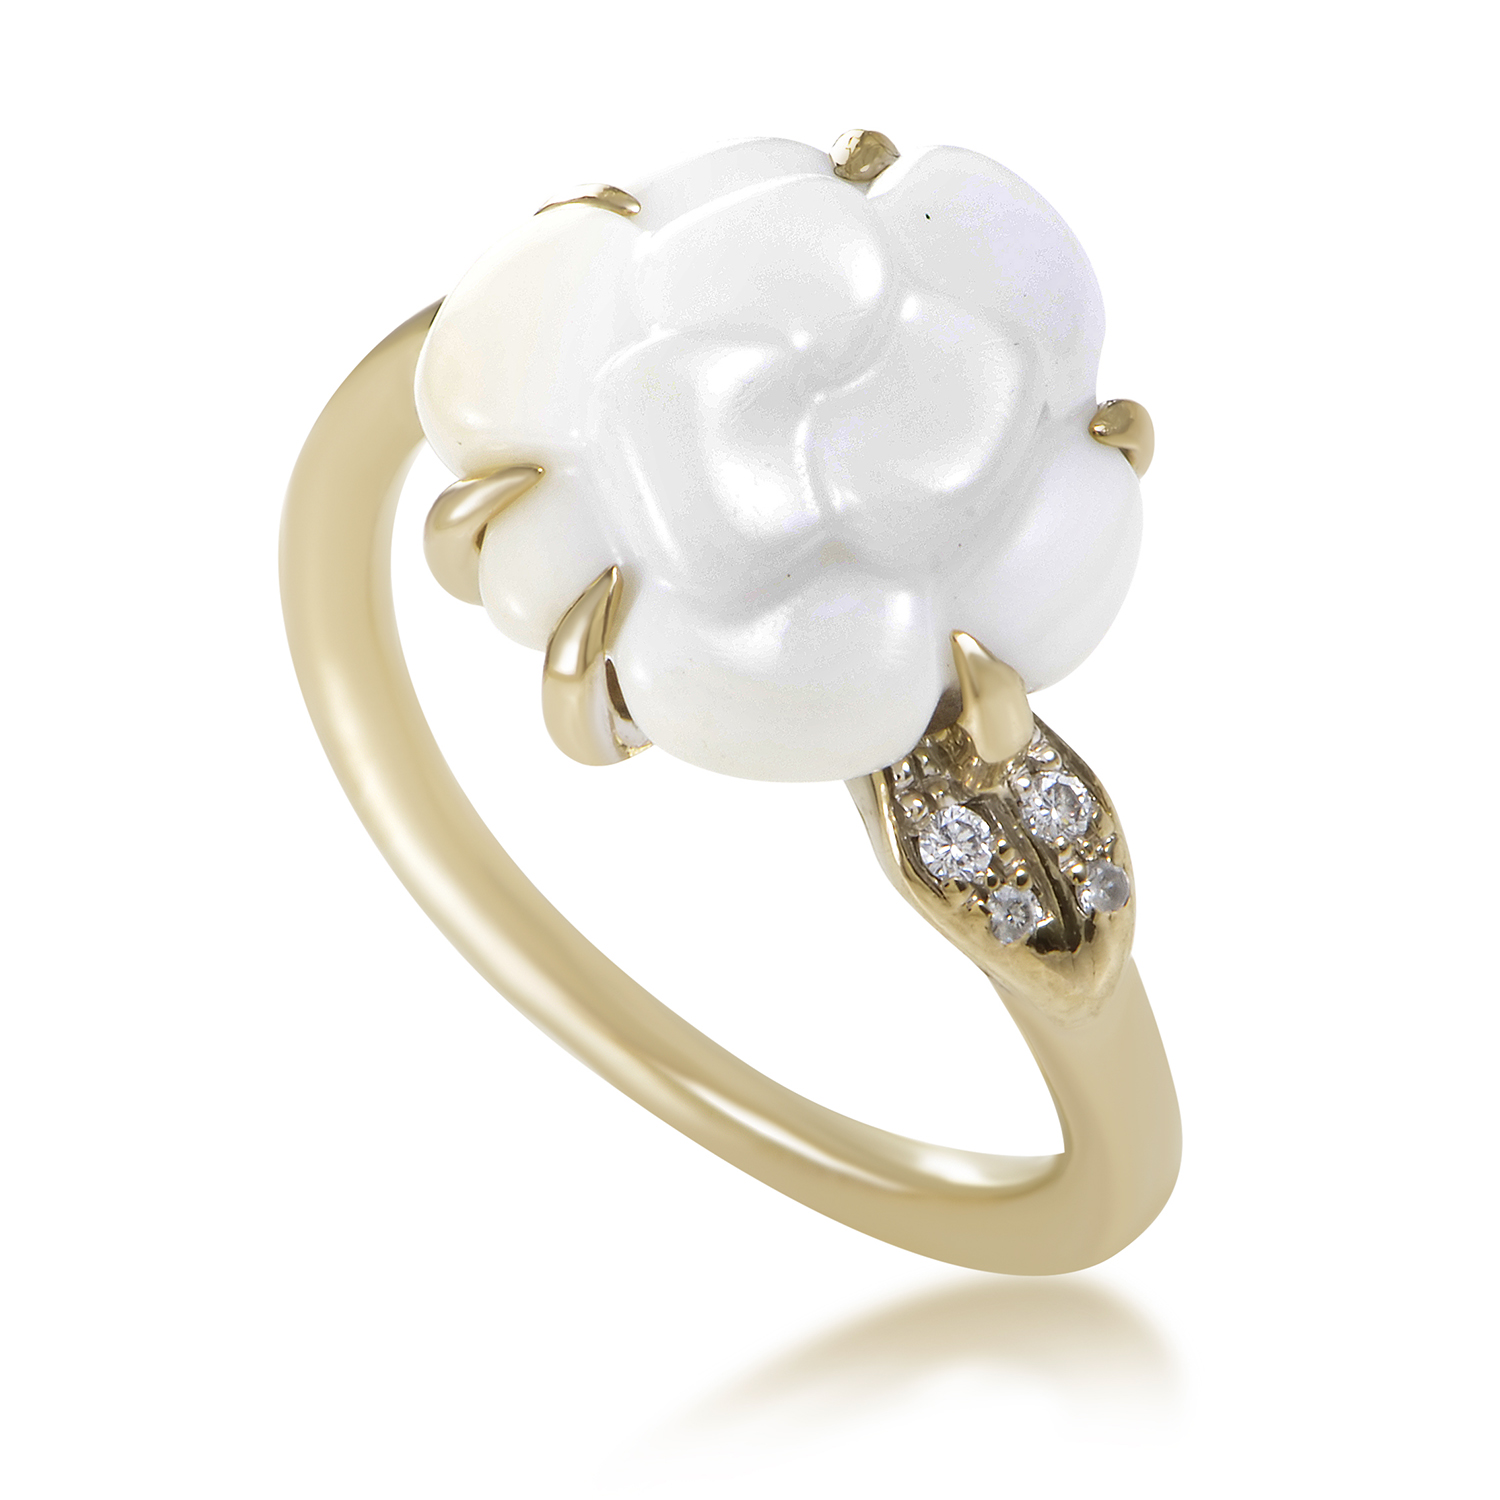 Chanel Camelia Women's 18K White Gold Diamond White Agate Flower Ring AK1B3634